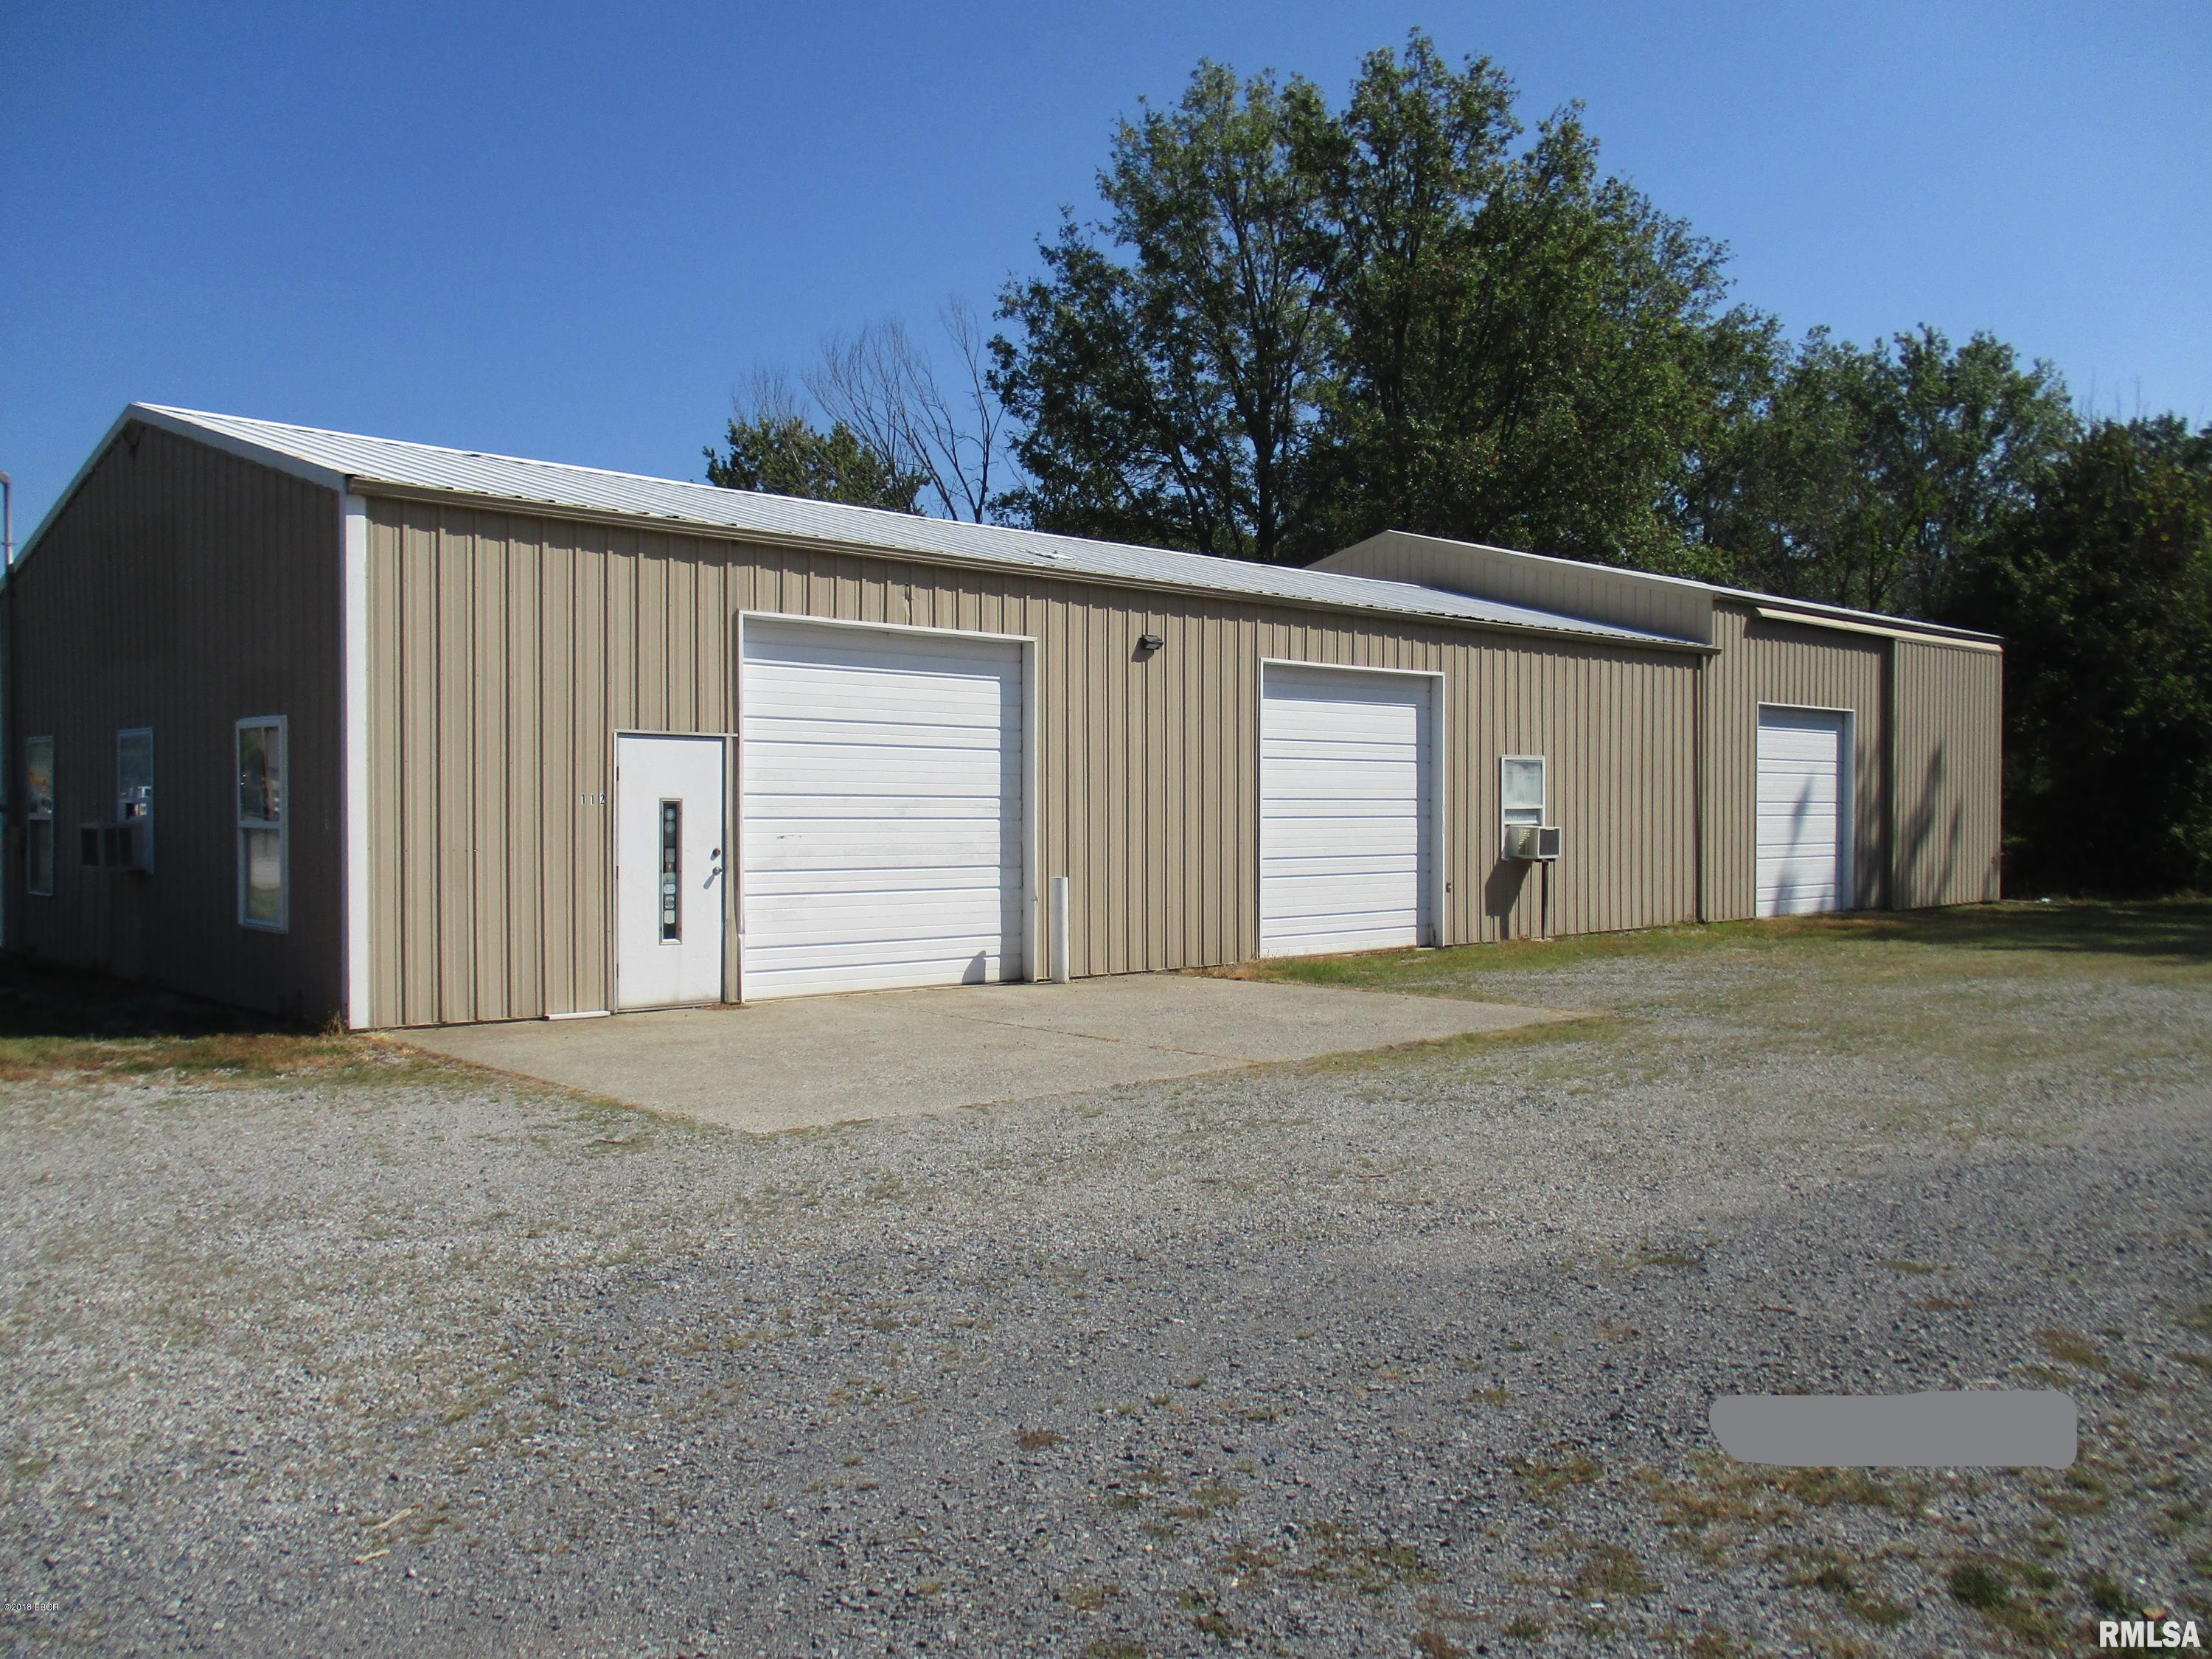 .85 acre with access to I-57 & US Rt 50. Zoned B-3 Highway Business. RE includes a pole building w/3024 sq ft & a 3 bedroom home currently rented for $450. per month. Home is being sold as is. Building is 30X60 - 1800 sq ft. with a 34X36 add on.Disclosure: none